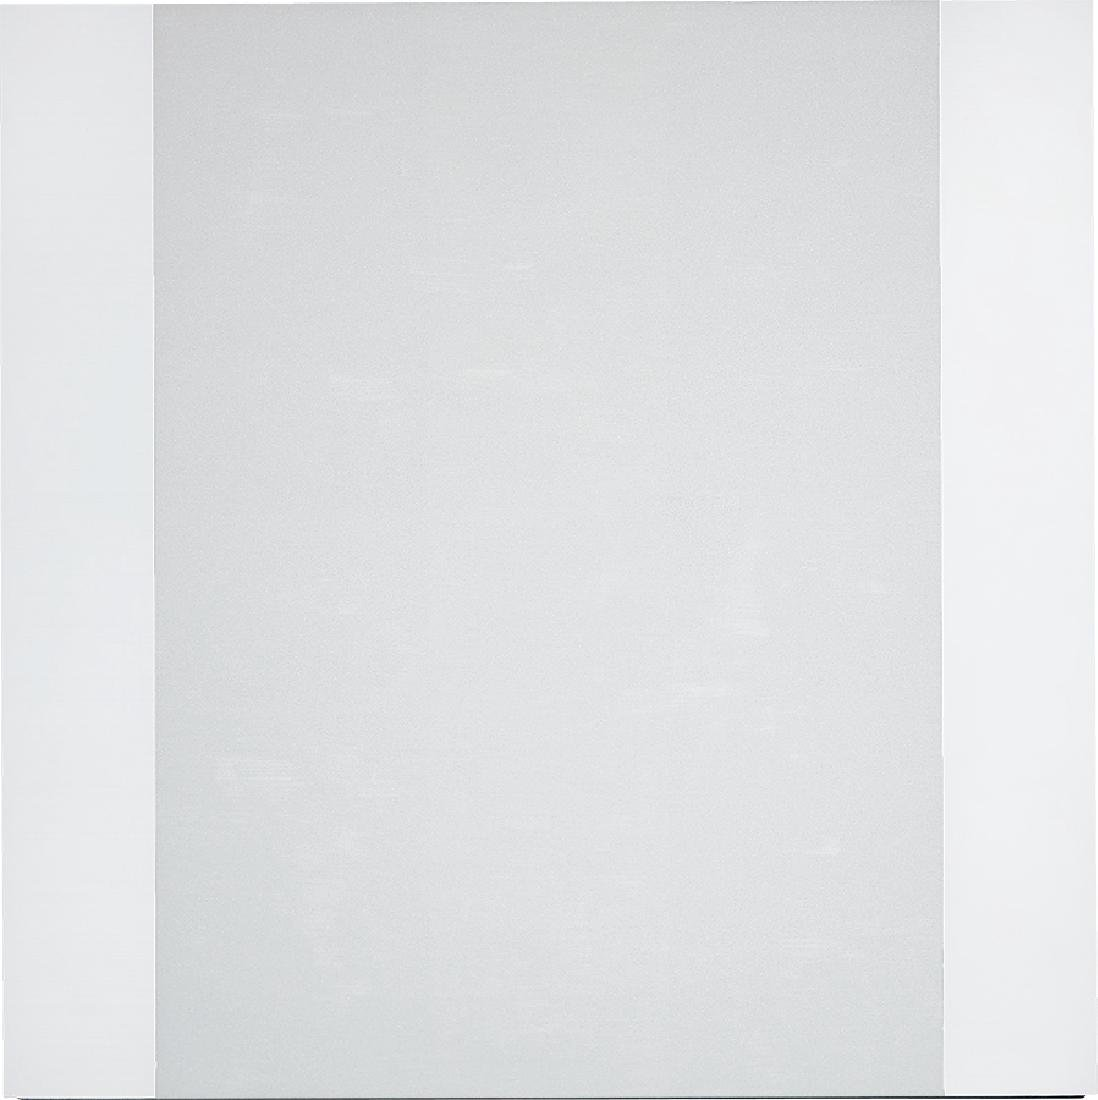 Mary Corse: Untitled (from White Light Inner Band